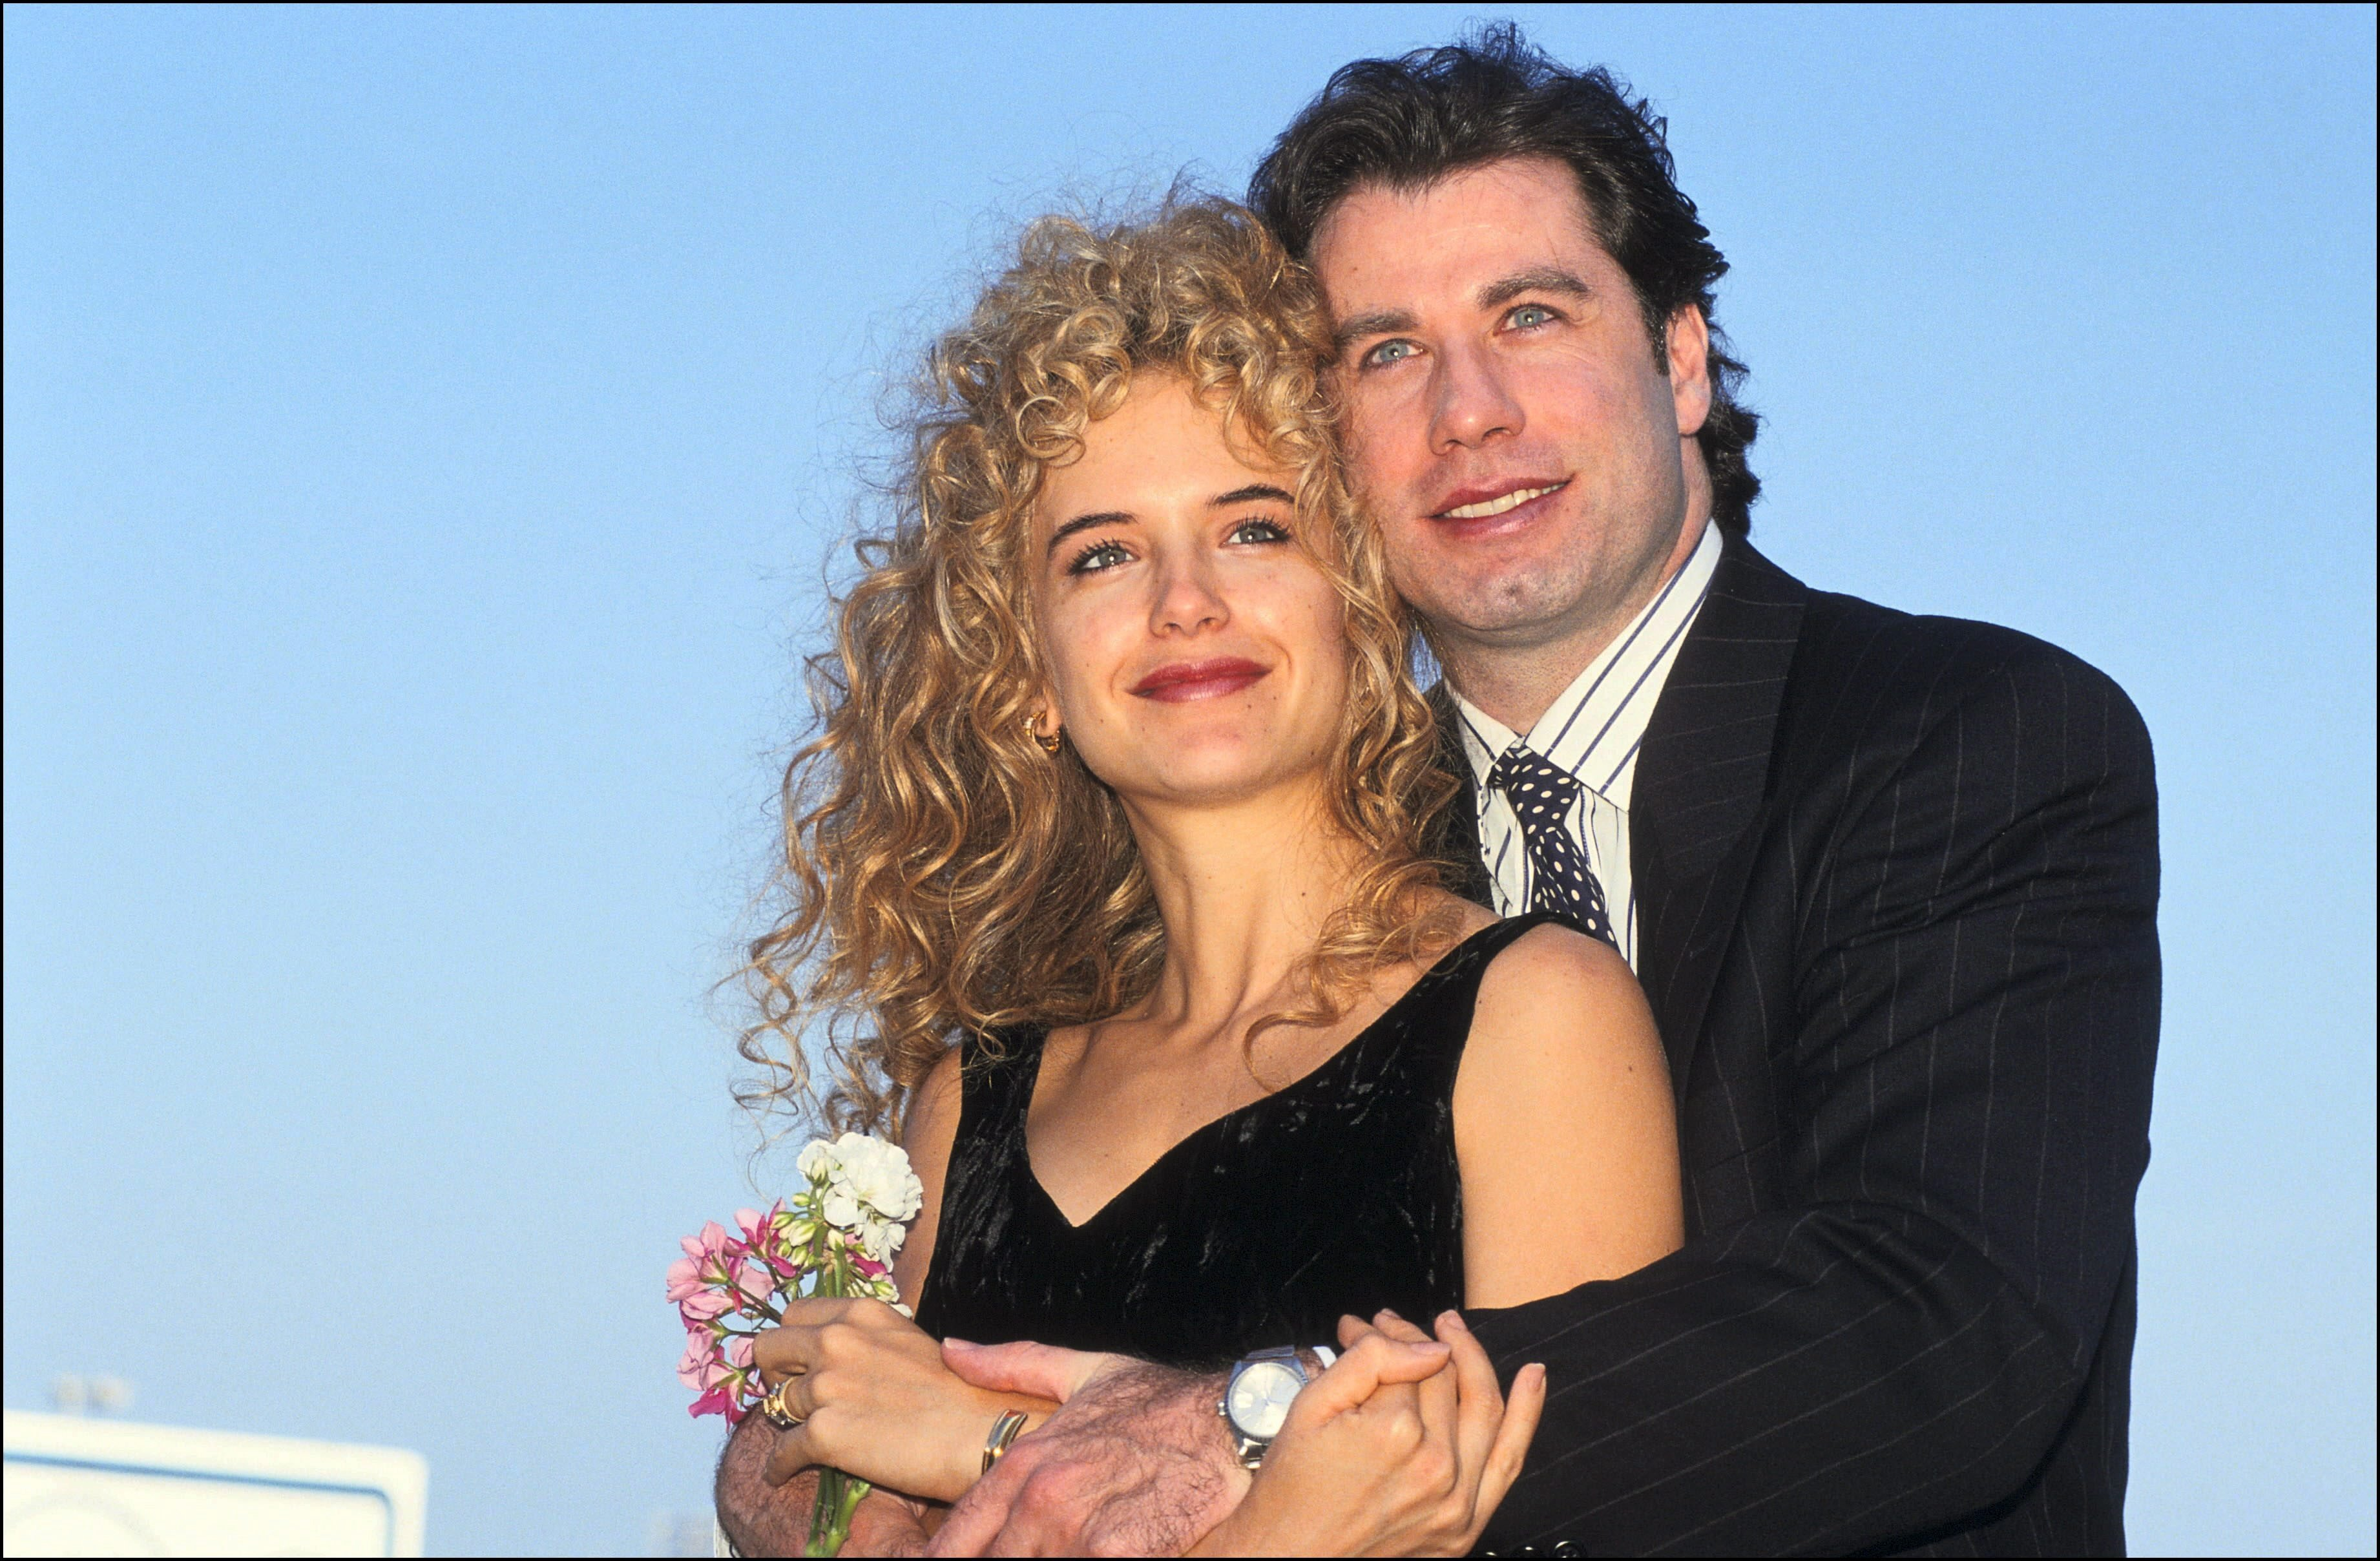 Image Source: Getty Images/John and Kelly as newlyweds